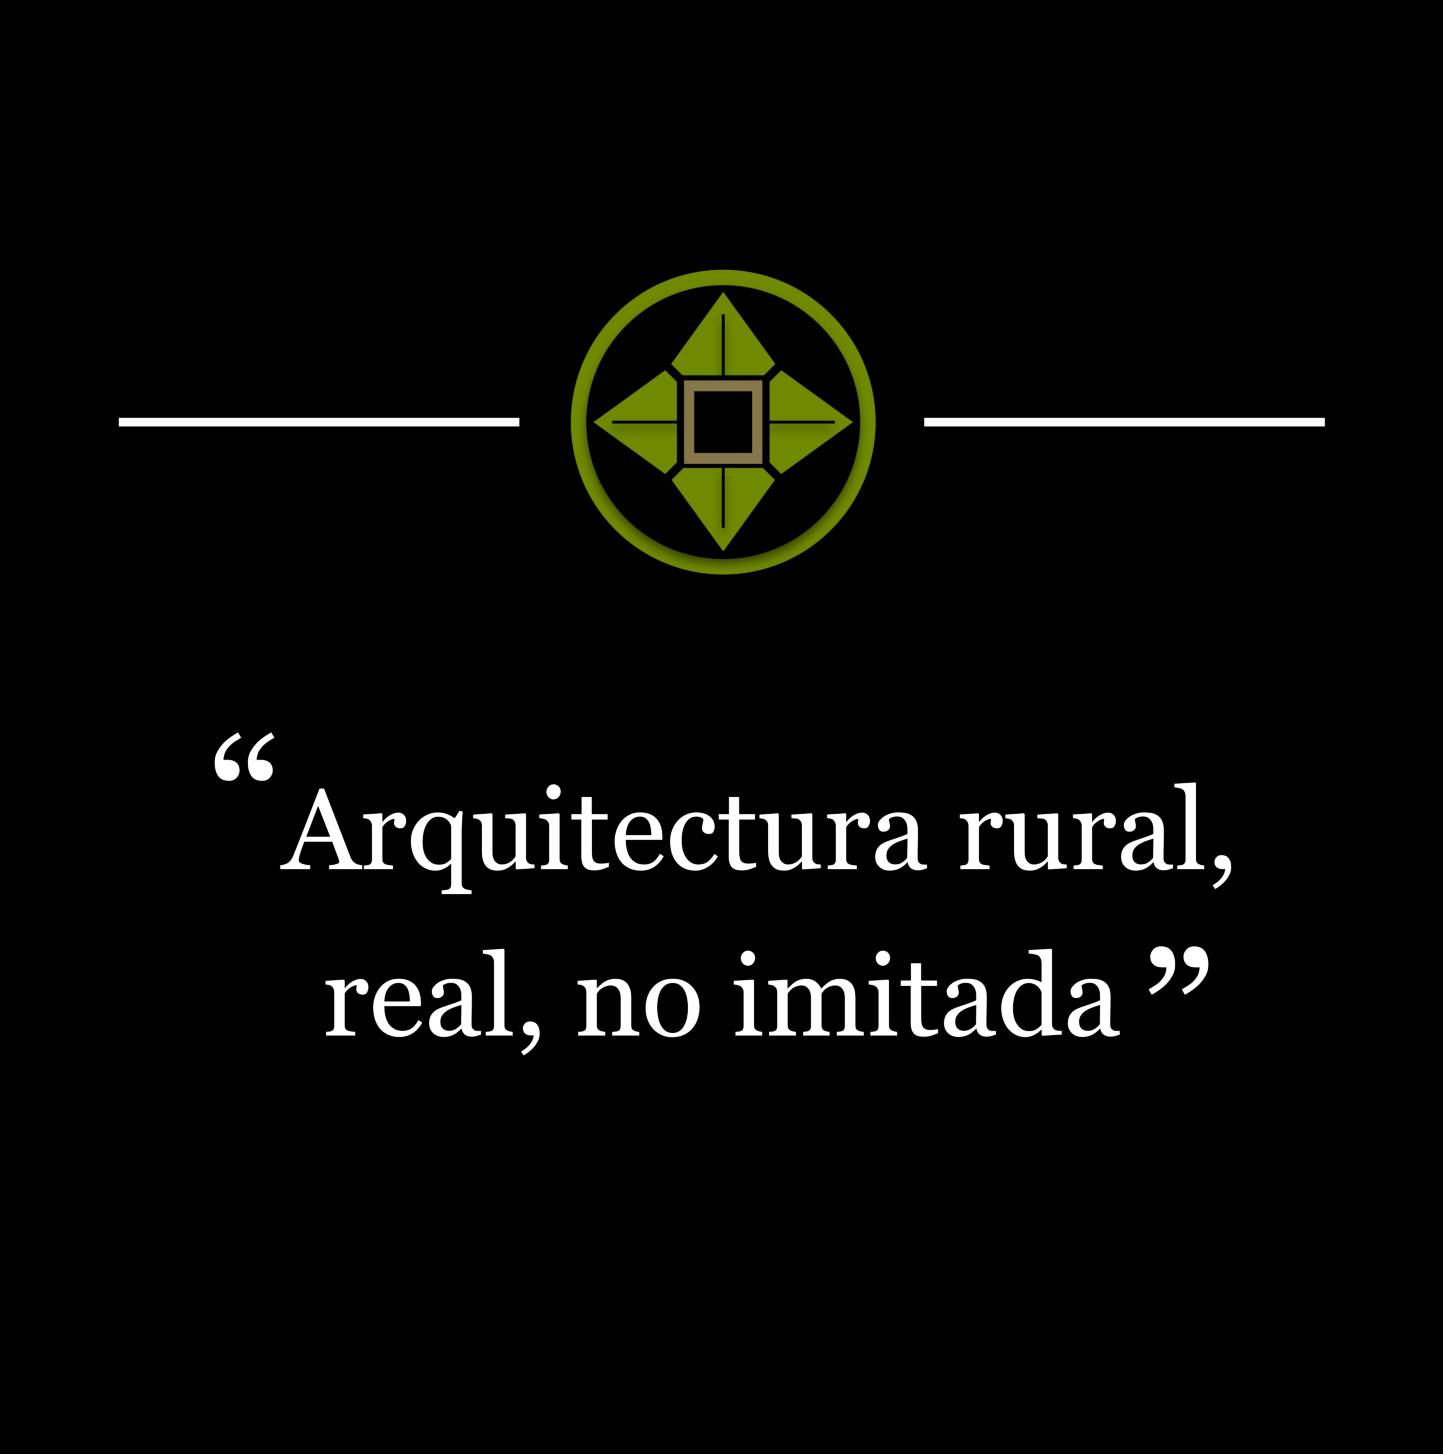 Arquitectura rural, real, no imitada_1